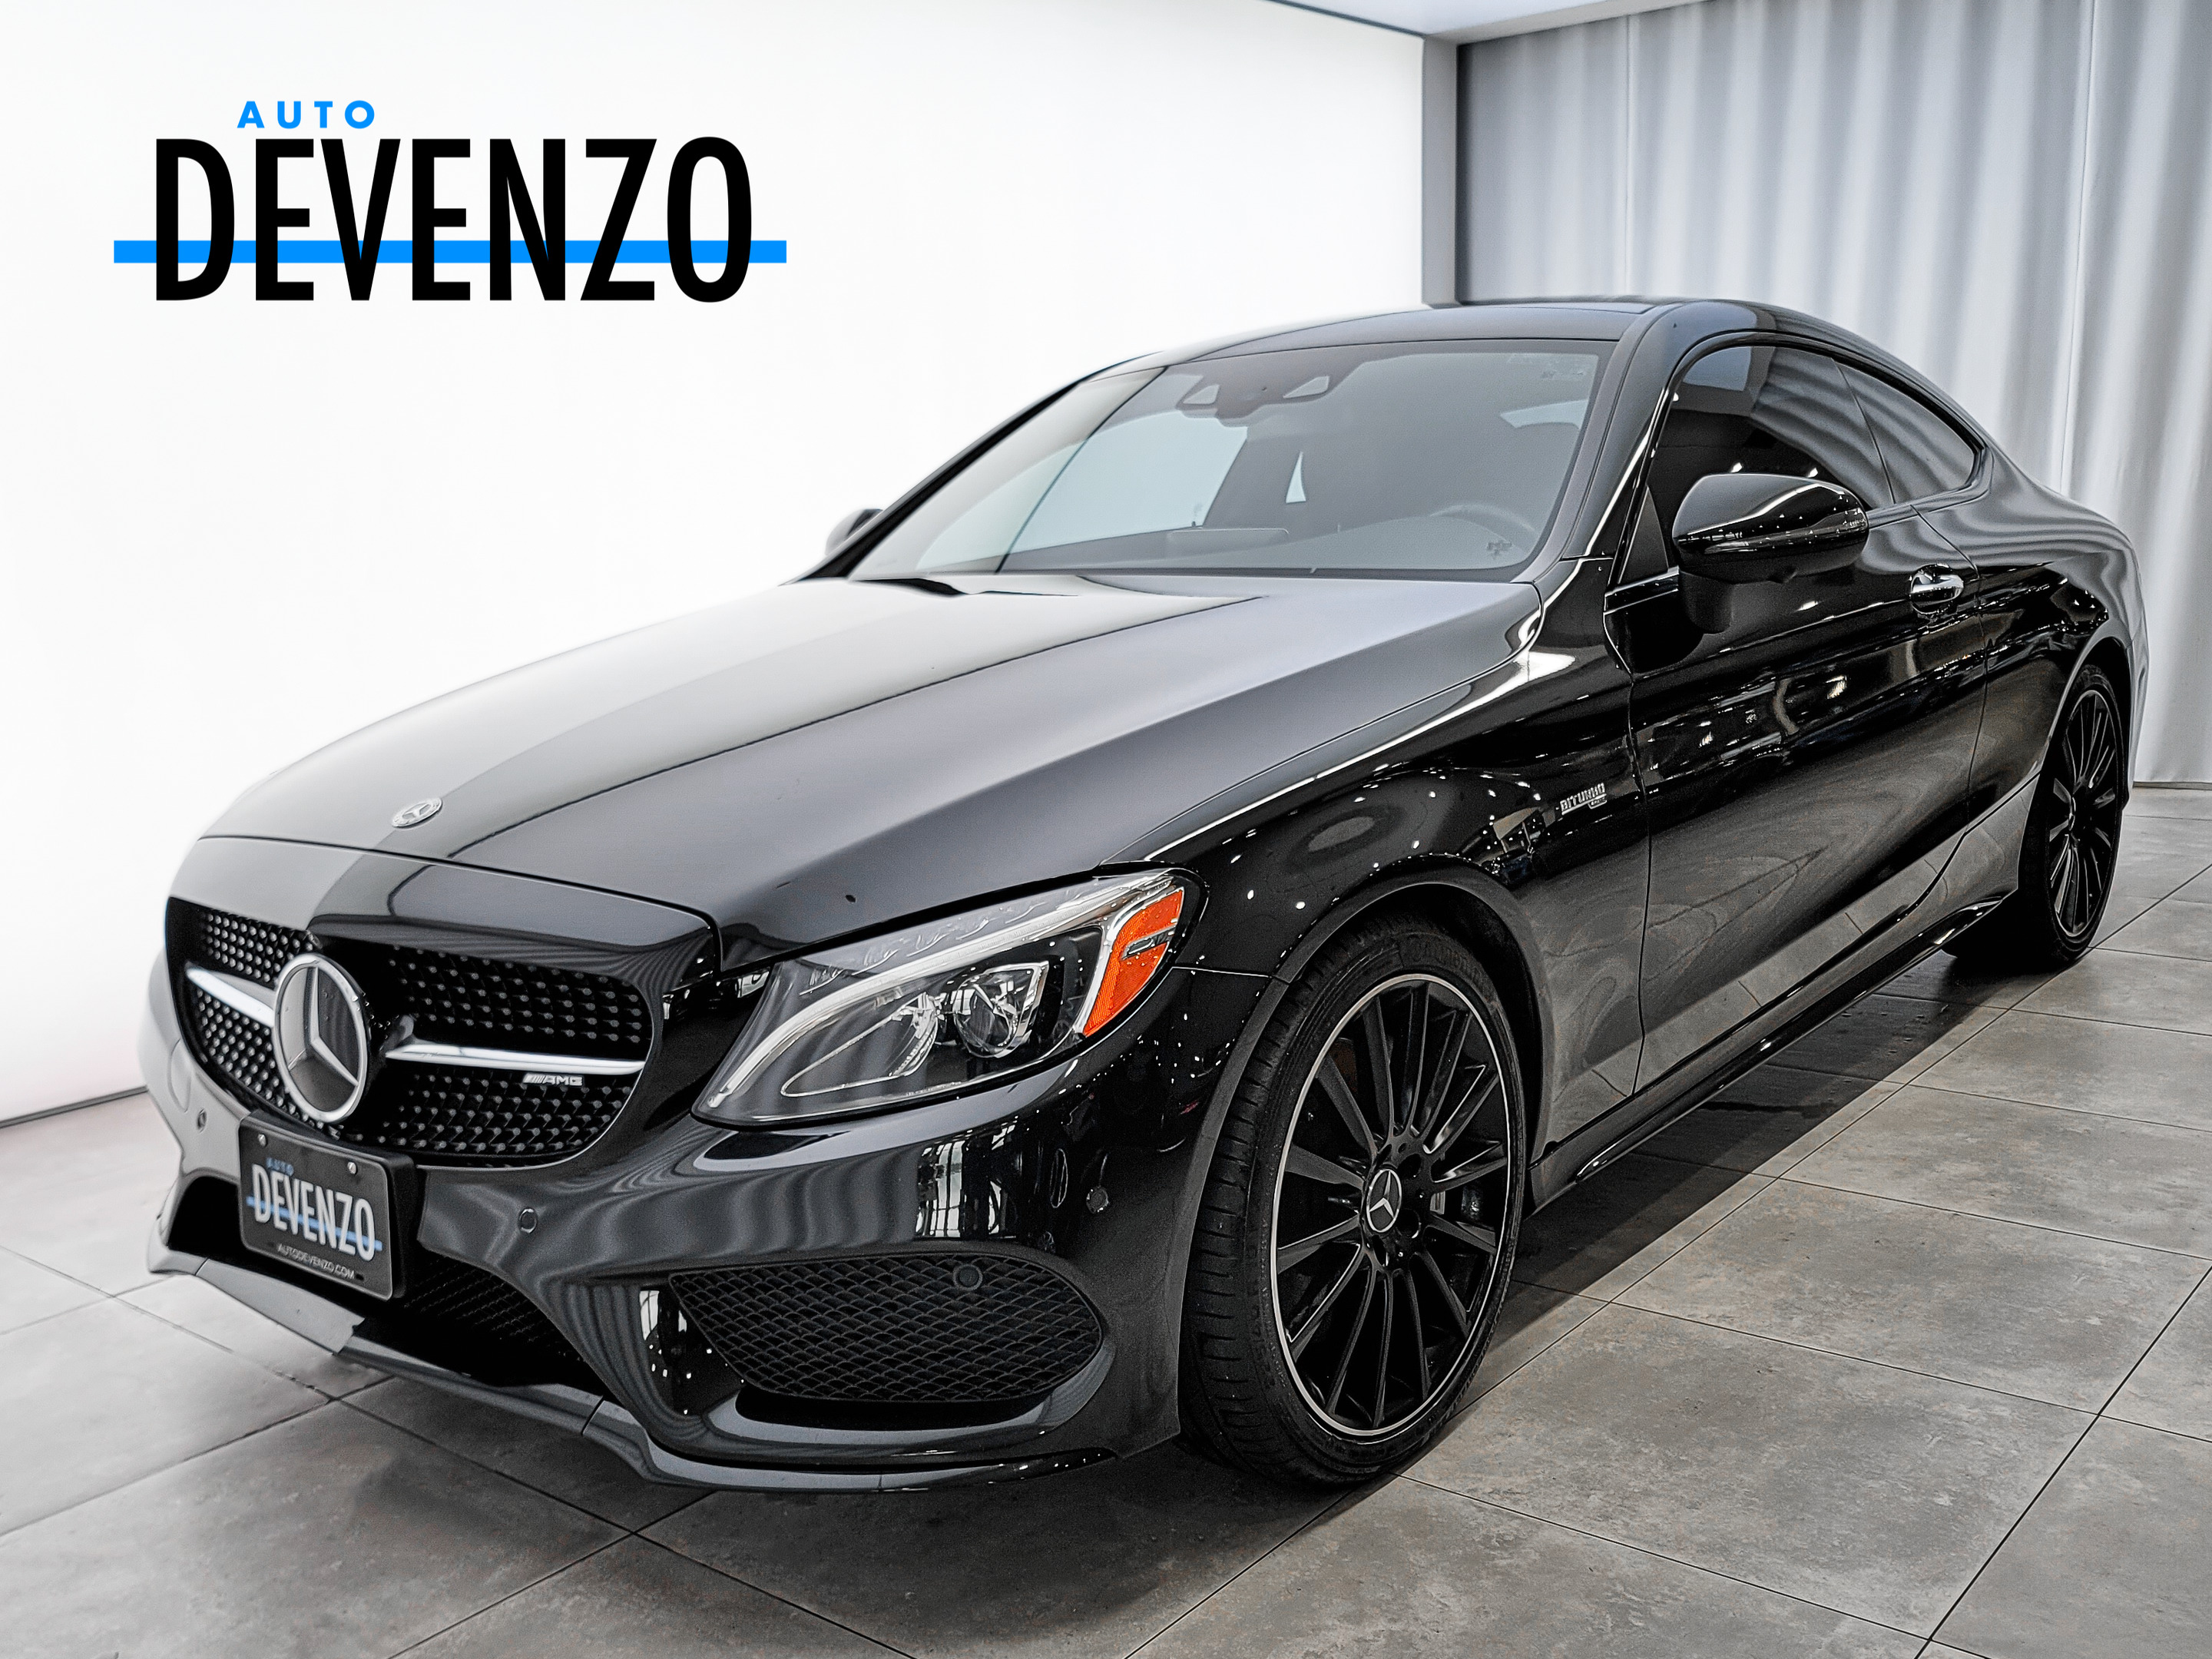 2018 Mercedes-Benz C-Class AMG C43 4MATIC Coupe Intelligent Drive / Night Pk complet